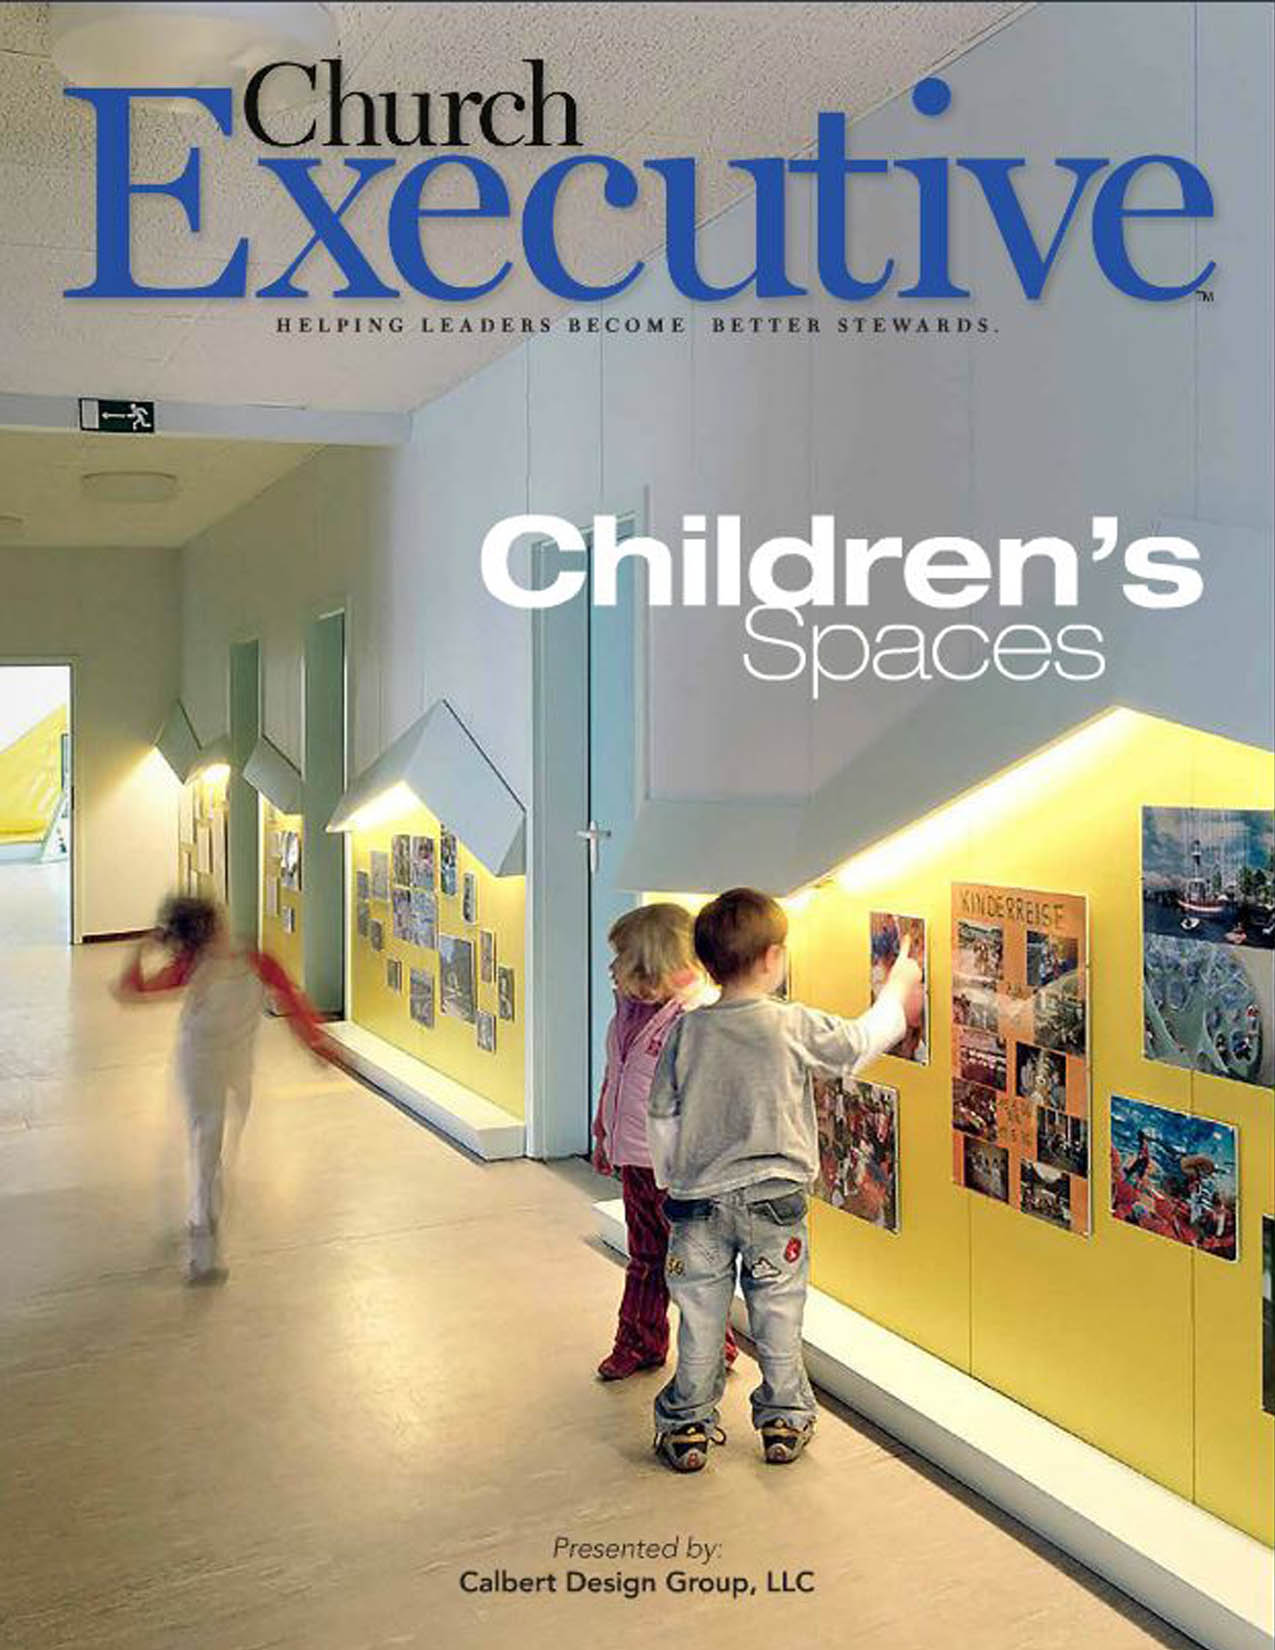 church executive childrens spaces